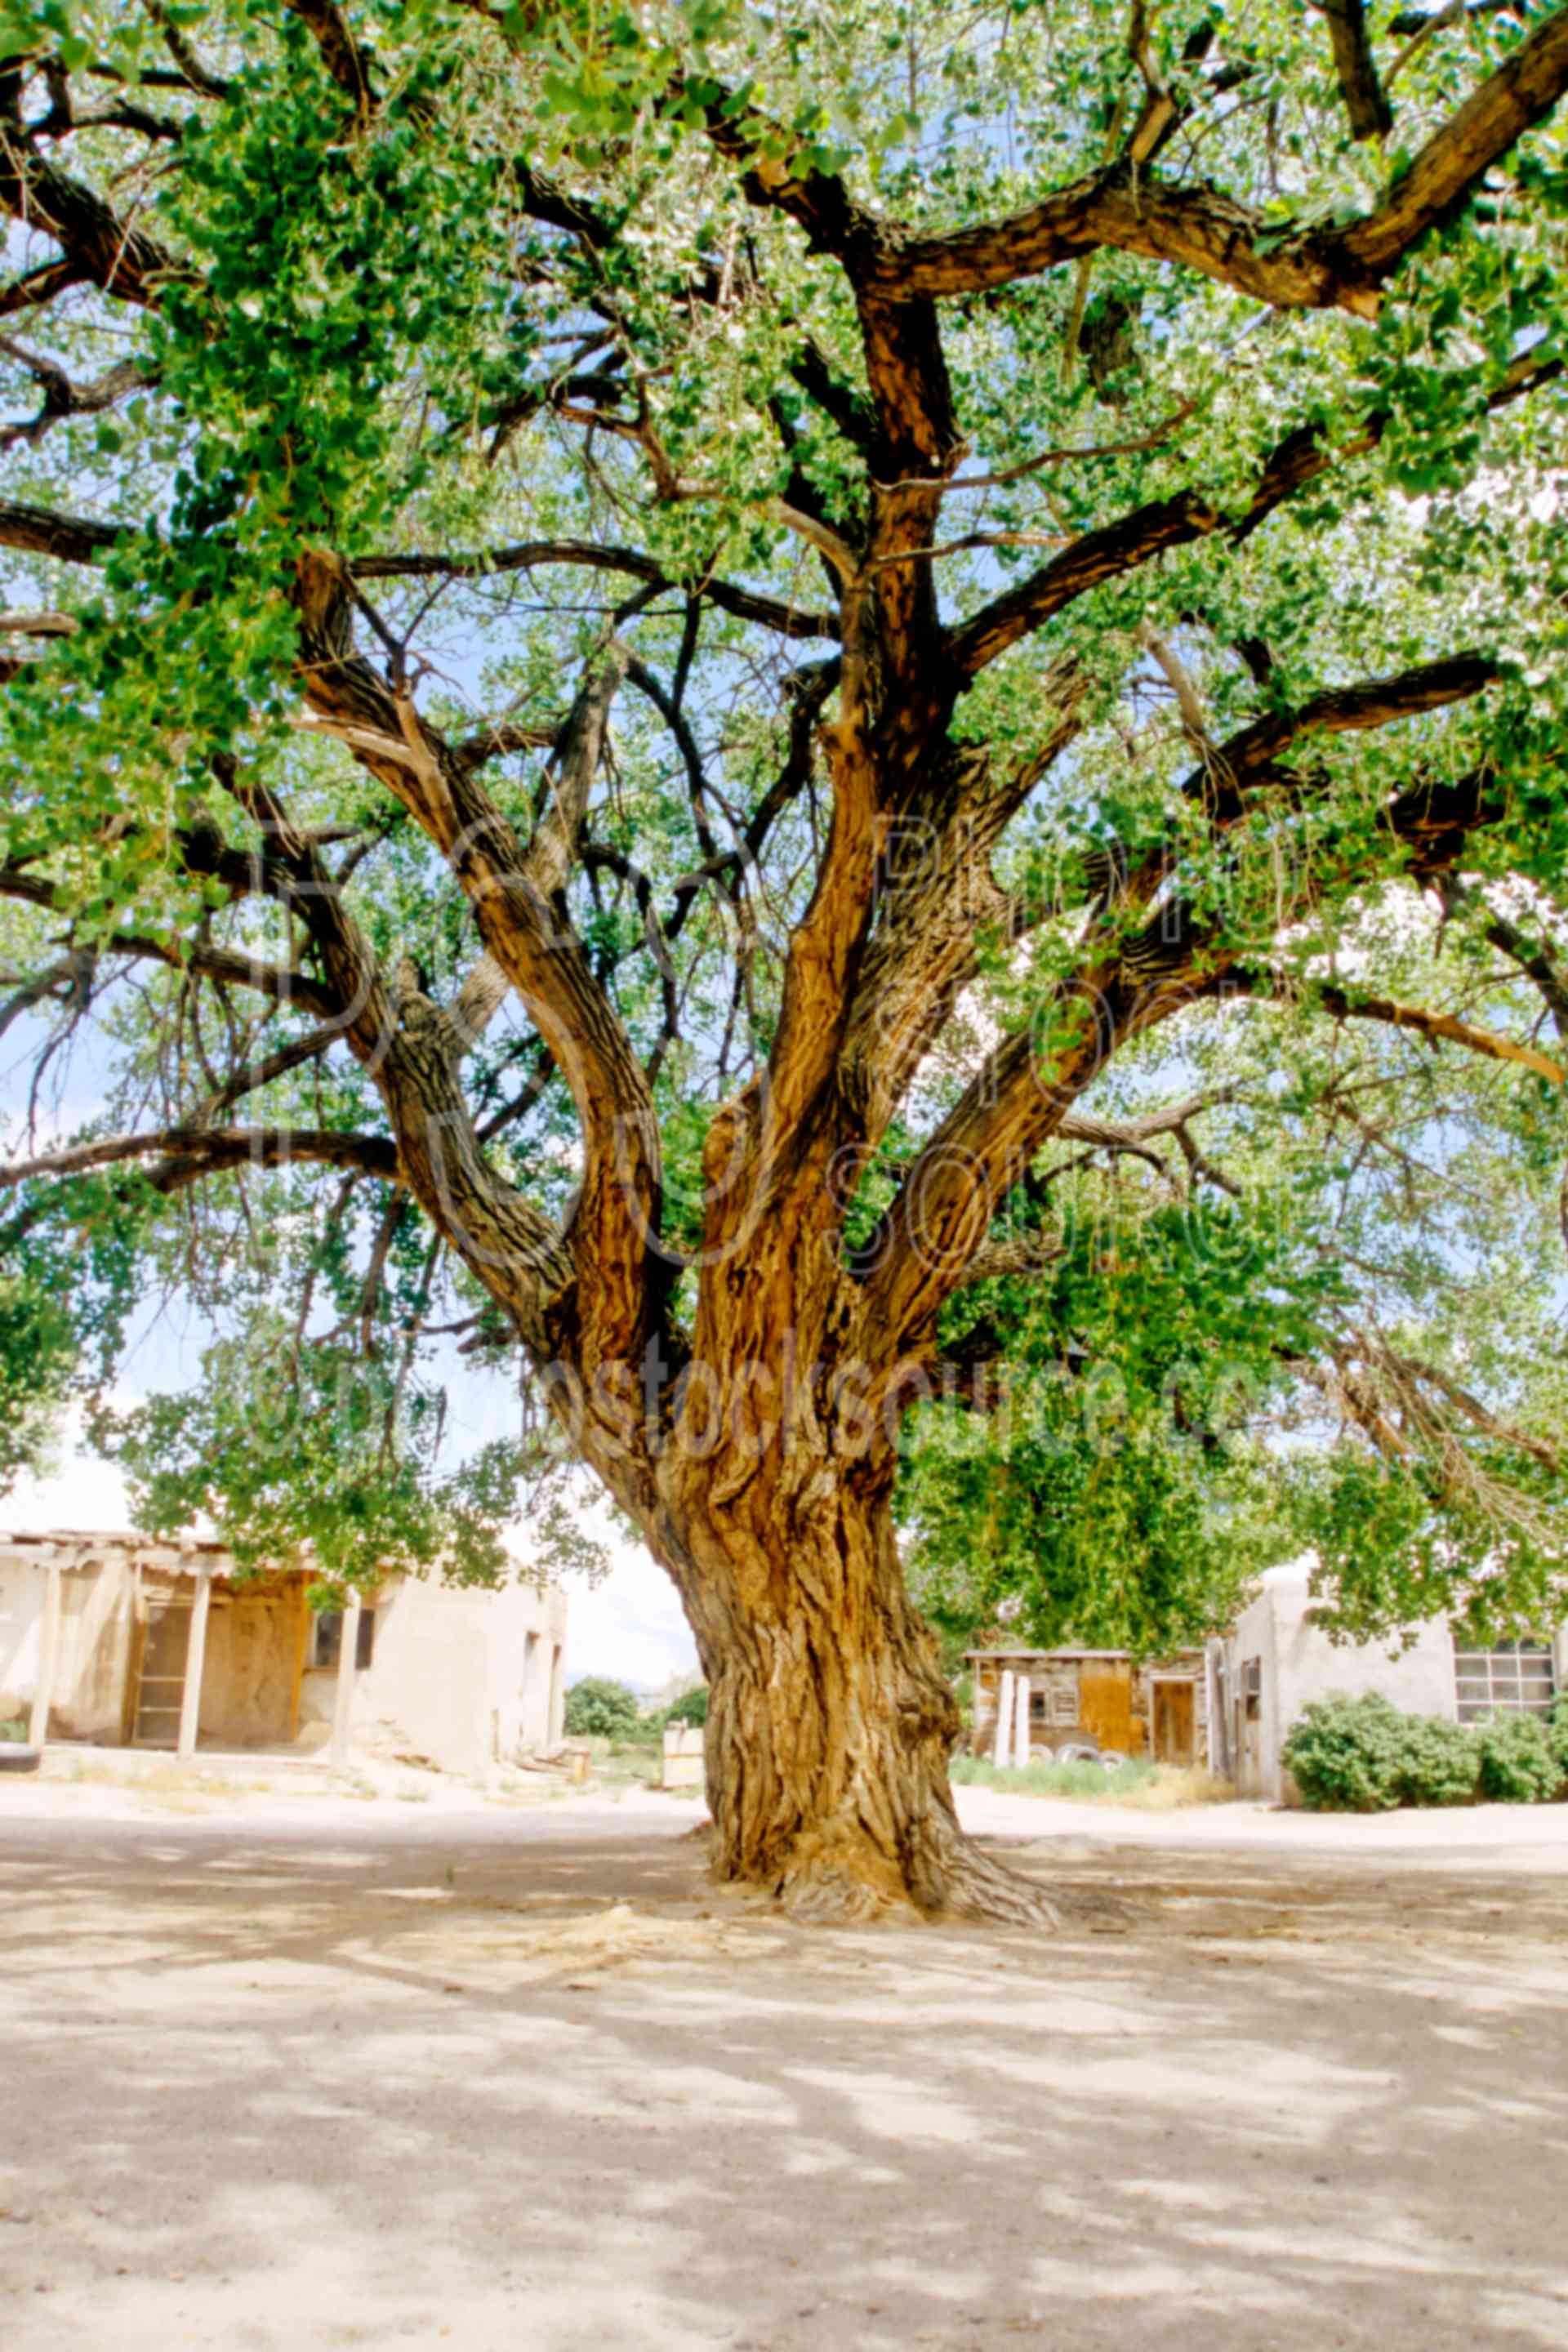 Usa Shade Photo Of Bigtree By Photo Stock Source Tree San Ildefonso Pueblo